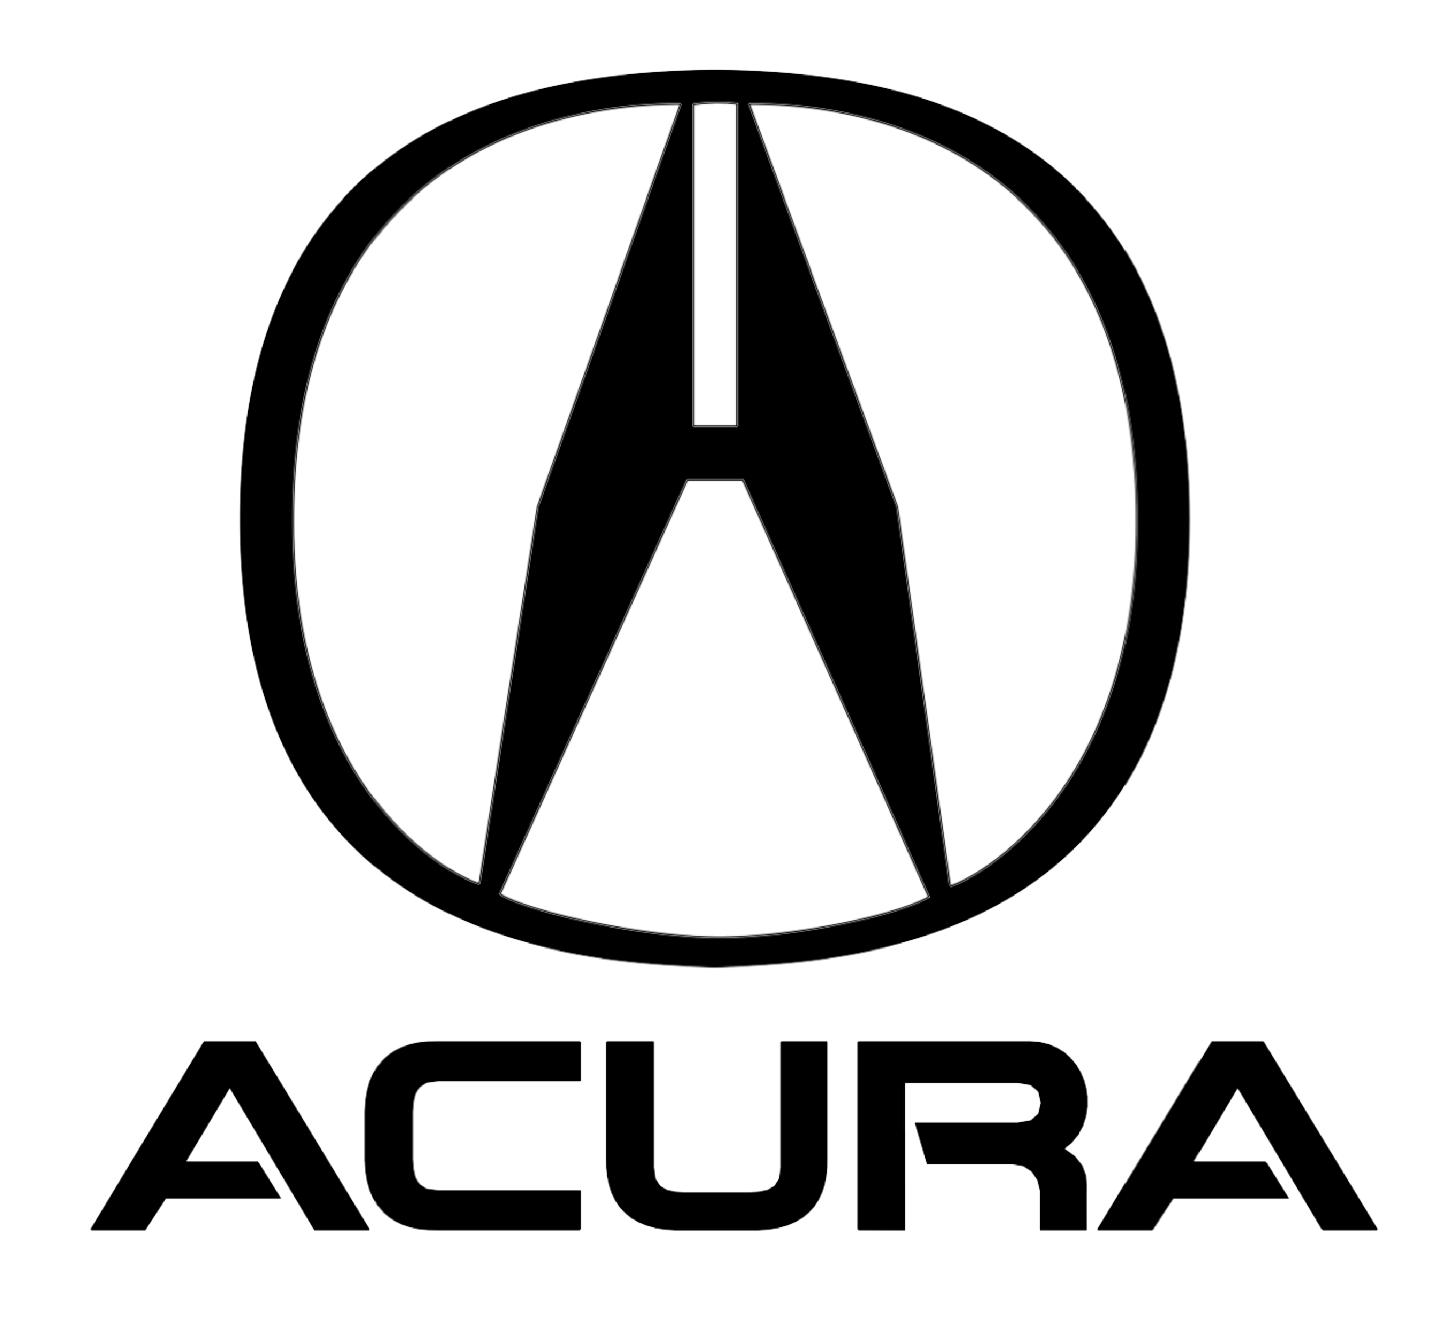 Acura logo acura car symbol meaning and history car brand names acura emblem biocorpaavc